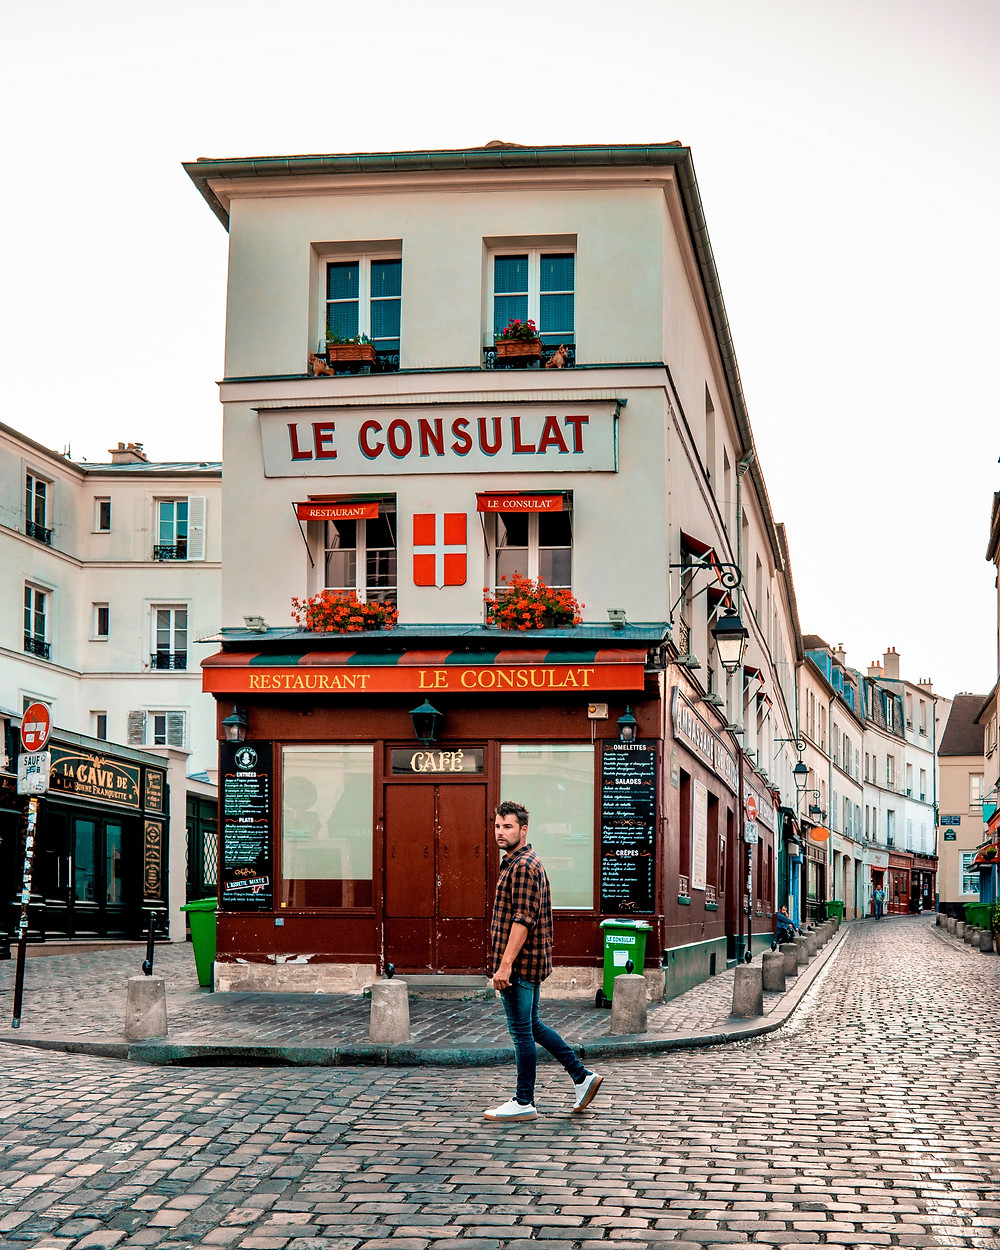 Le Consulat, a pretty (and popular) cafe in Montmartre